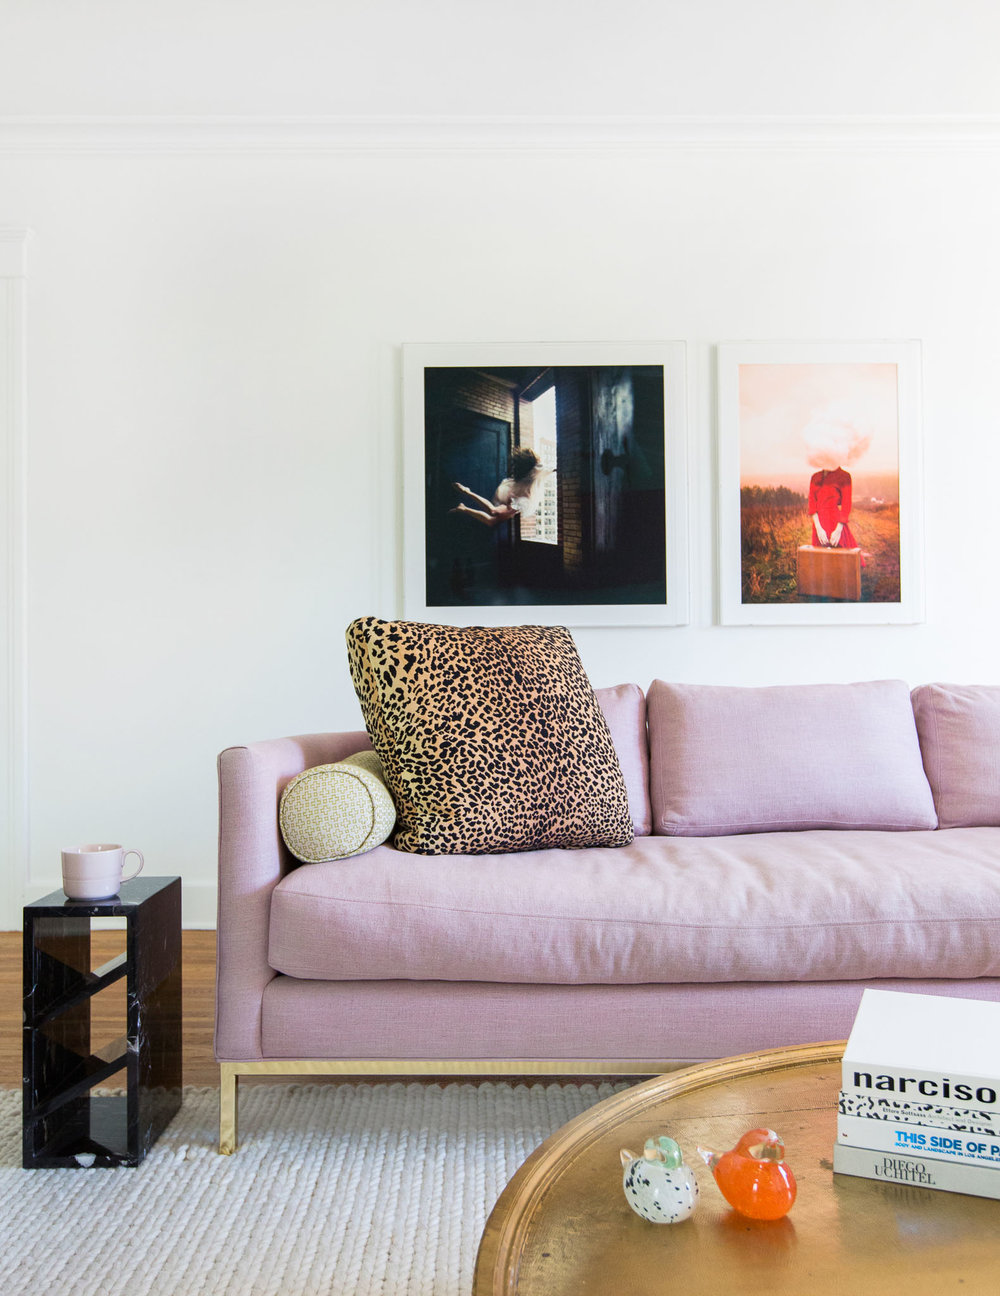 Are Gallery Walls Over? Here's Why Interior Designers Are Ditching the Trend - Here's Why Interior Designers Are Ditching the TrendAnd what to try instead.BY MEGAN BEAUCHAMPFEB 14, 2019